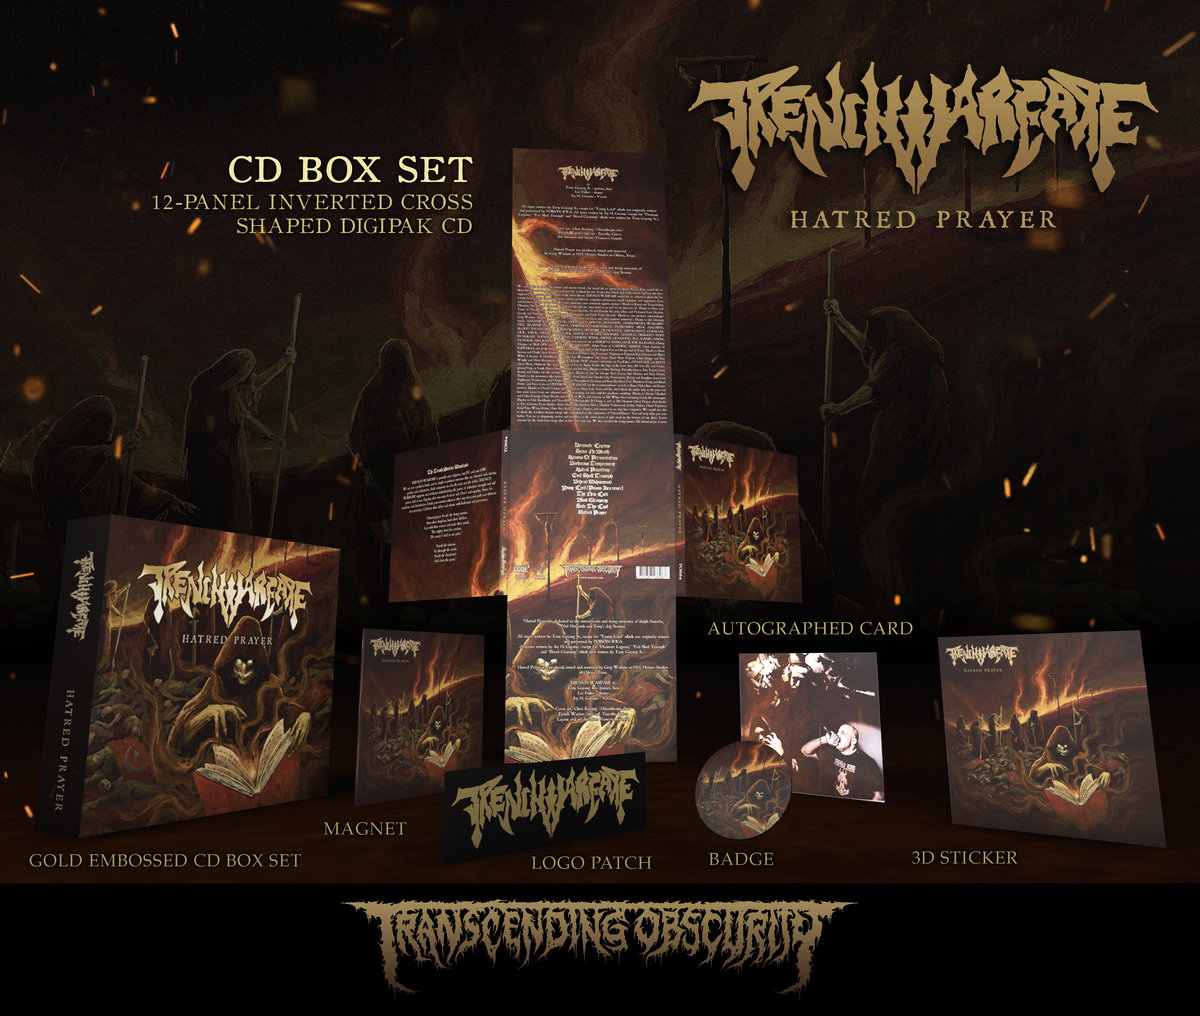 TRENCH WARFARE (US) - 'Hatred Warfare' Autographed Gold-embossed CD Box Set